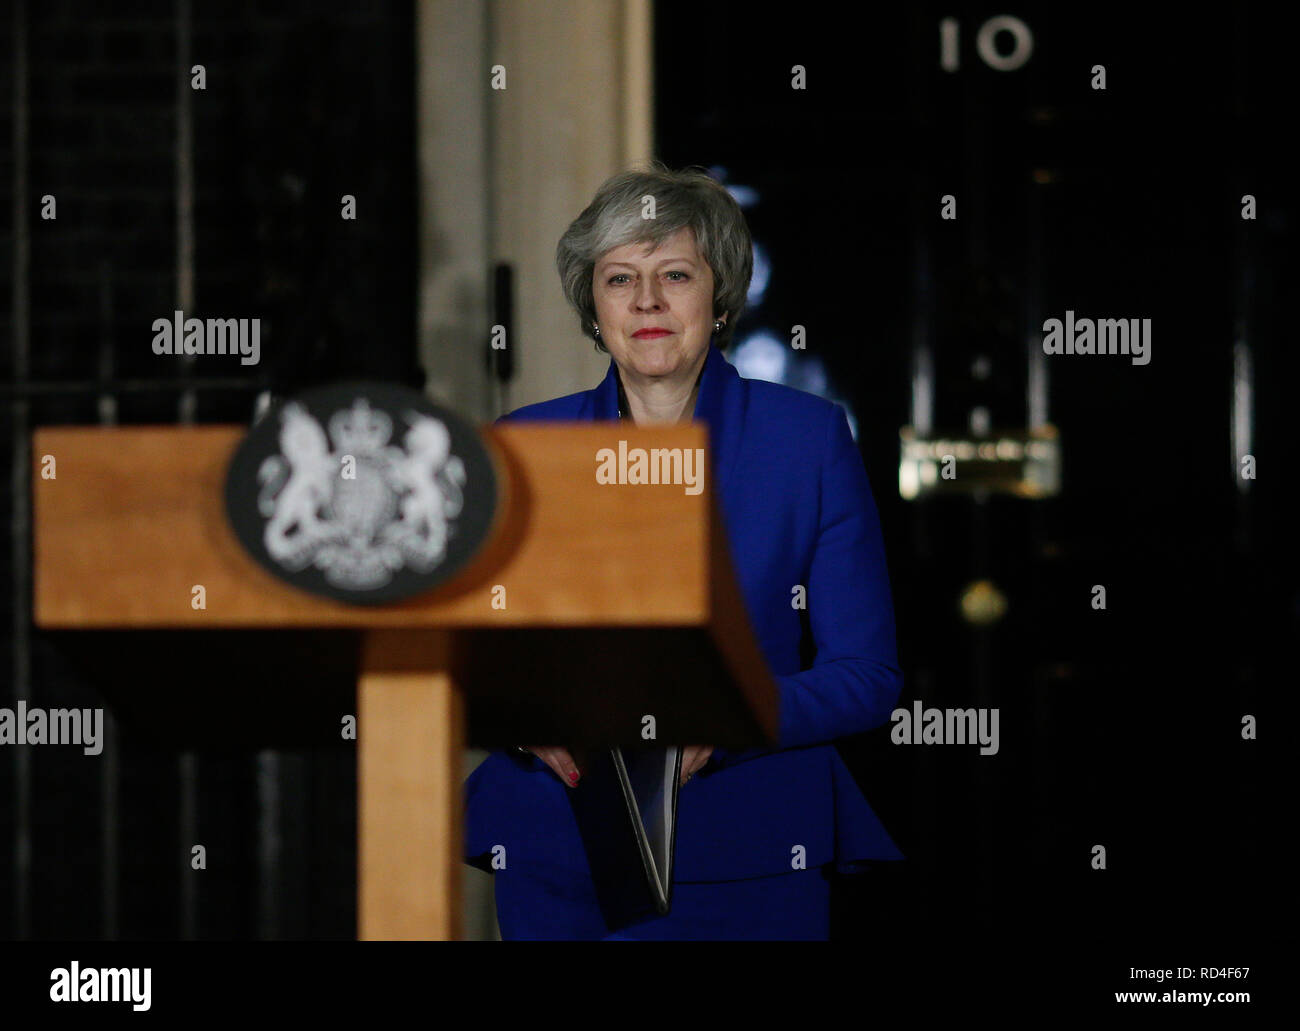 London, London, UK. 16th Jan, 2019. British Prime Minister Theresa May prepares to make a statement outside 10 Downing street, in London, Britain on Jan. 16, 2019. The British government survived a no-confidence vote at the parliament on Wednesday, one day after it suffered a record-breaking Brexit deal vote defeat. Credit: Tim Ireland/Xinhua/Alamy Live News - Stock Image